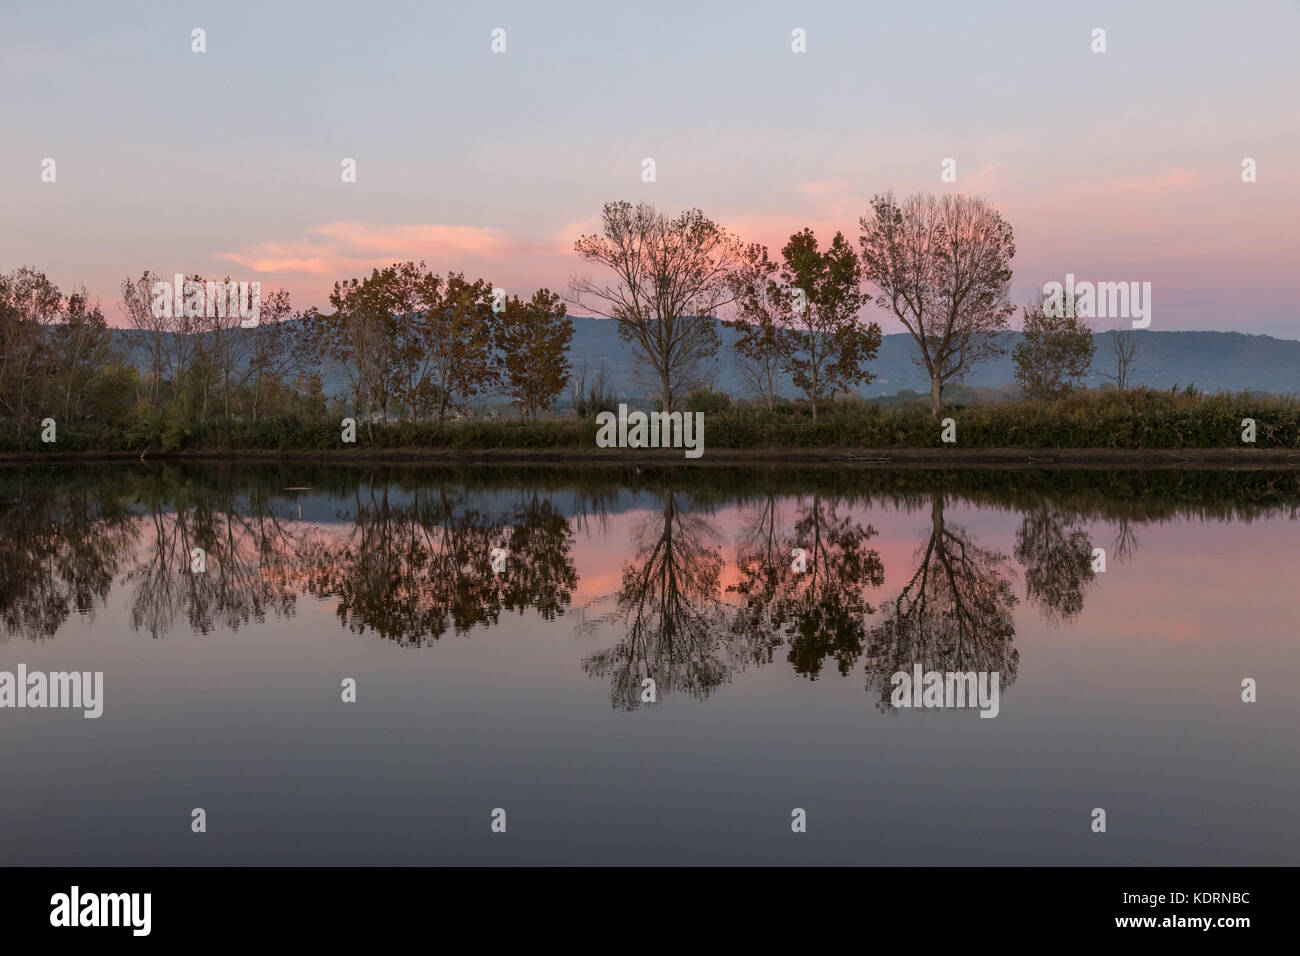 A symmetric photo of a lake, with trees and clouds reflections on water and soft and warm sunset colors - Stock Image